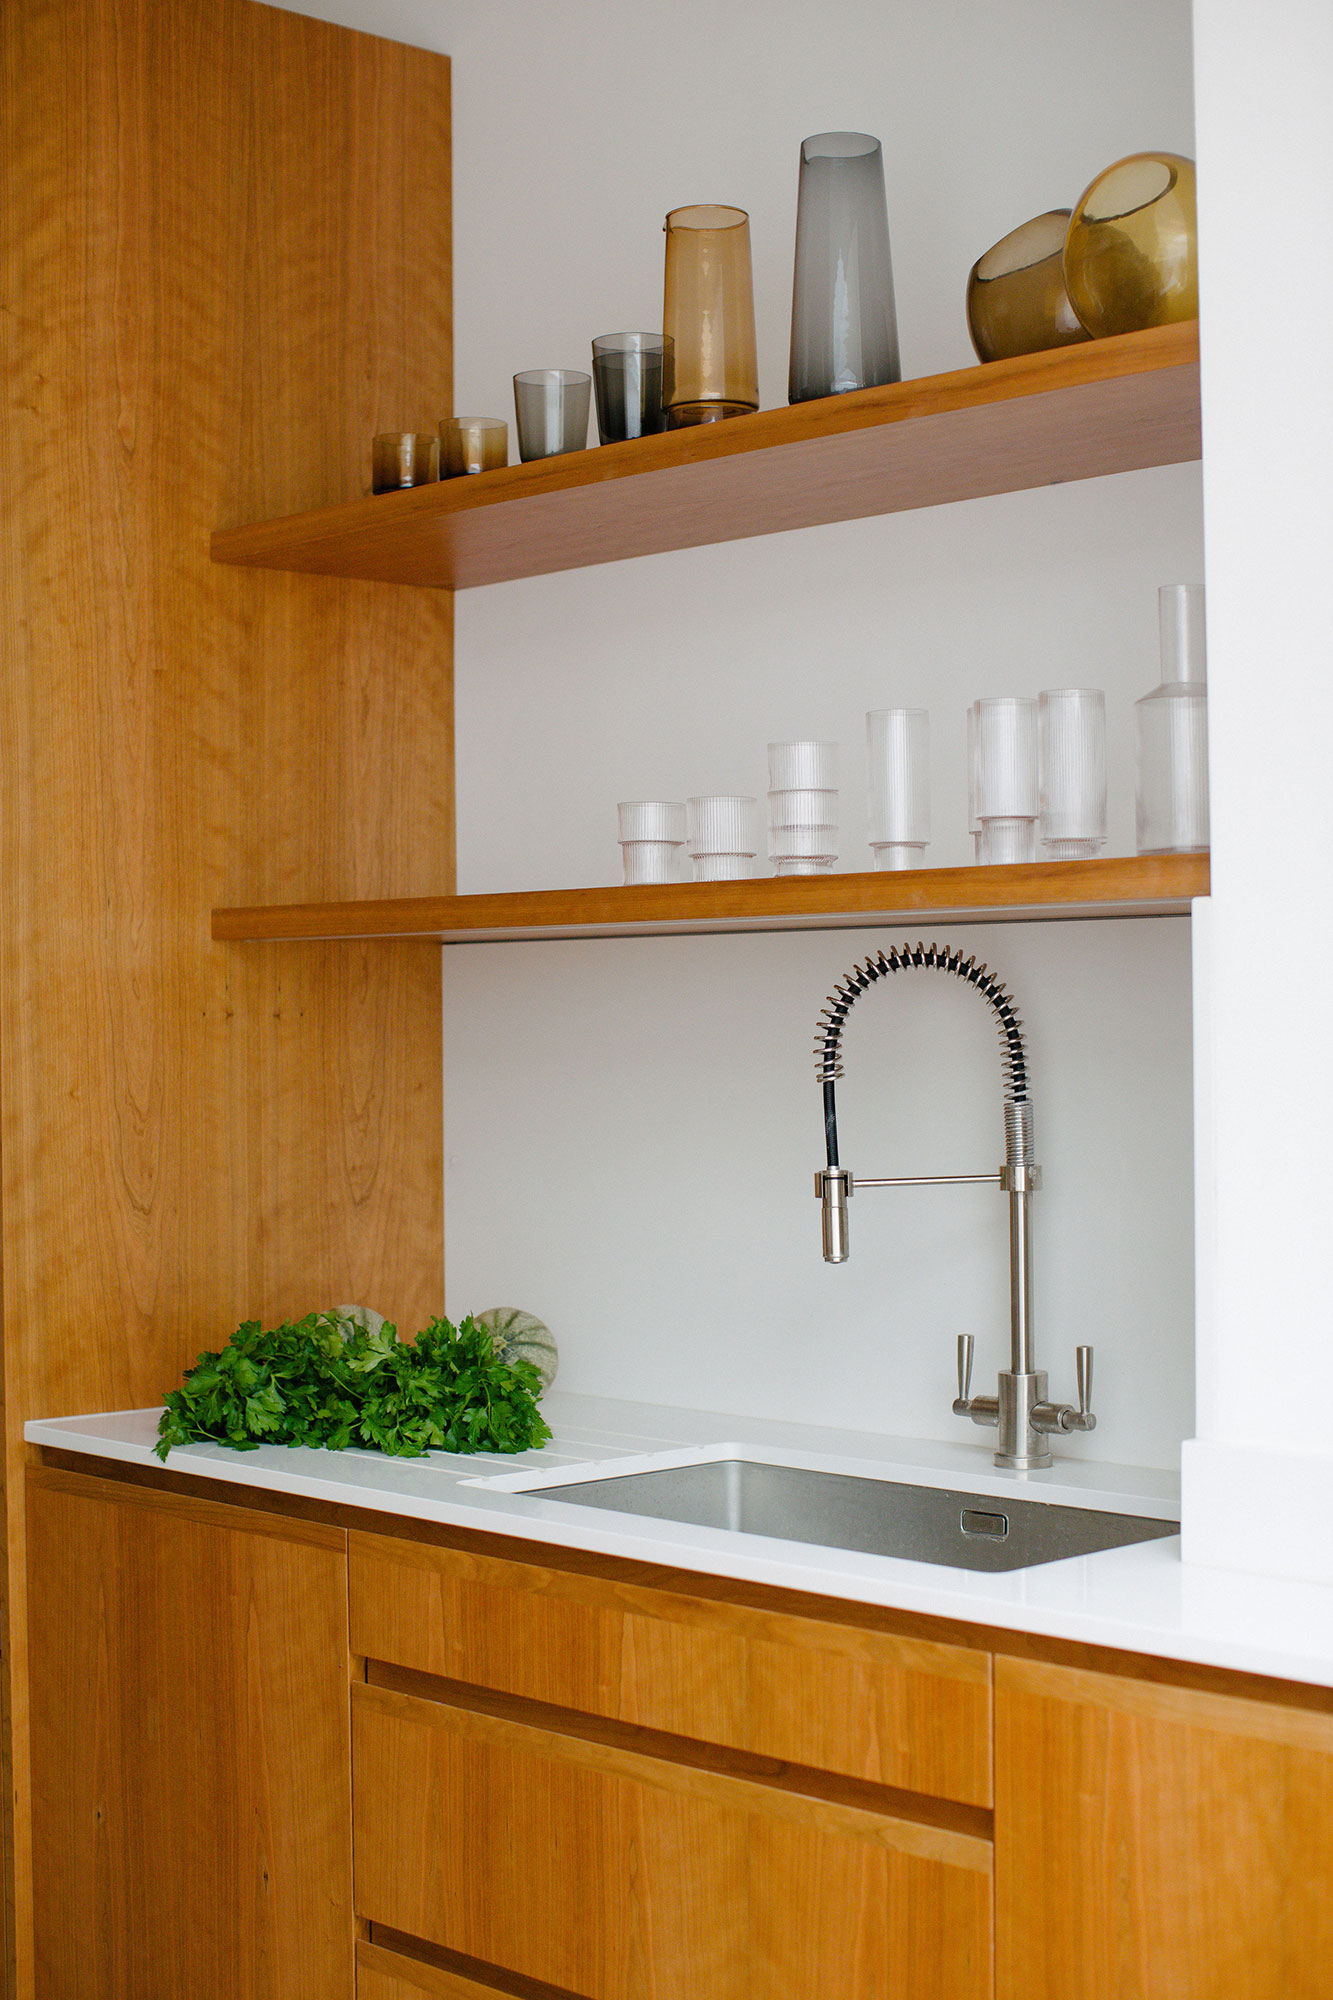 bespoke kitchen shelves and tap